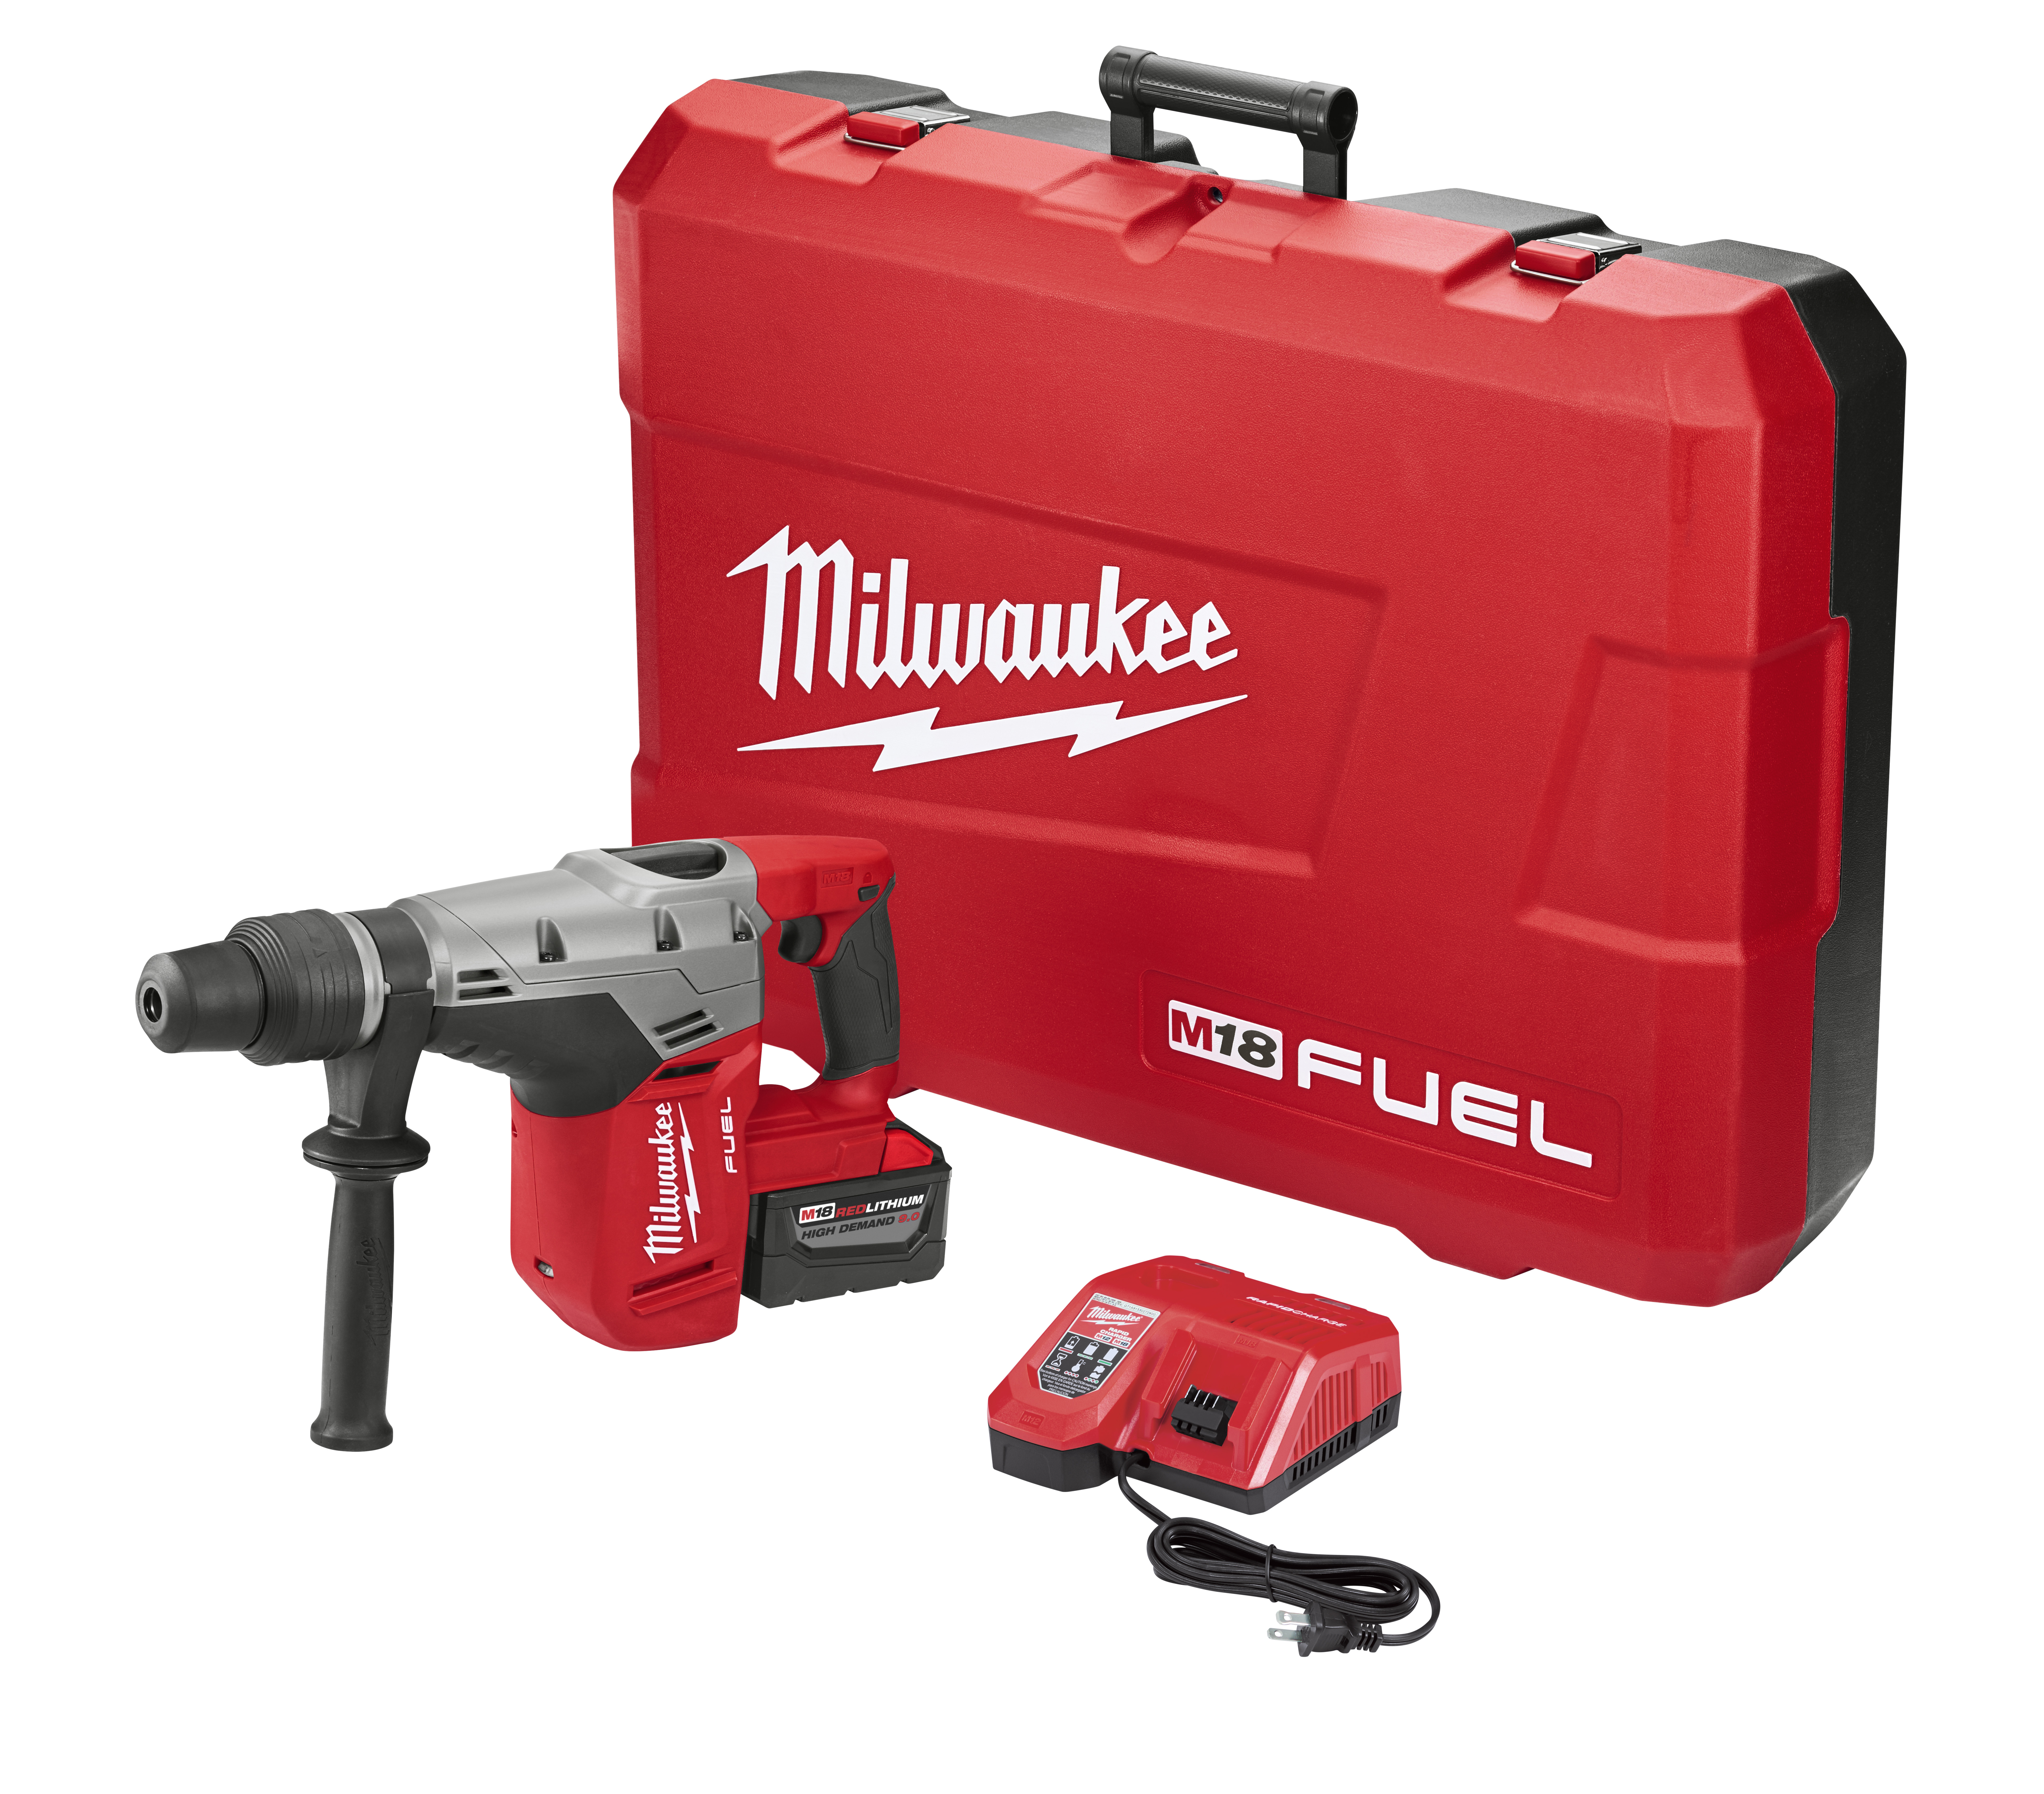 Milwaukee® M18™ FUEL™ 2717-21HD Cordless Rotary Hammer Kit, 42378 in SDS-Max® Chuck, 18 VDC, 0 to 450 rpm No-Load, Lithium-Ion Battery